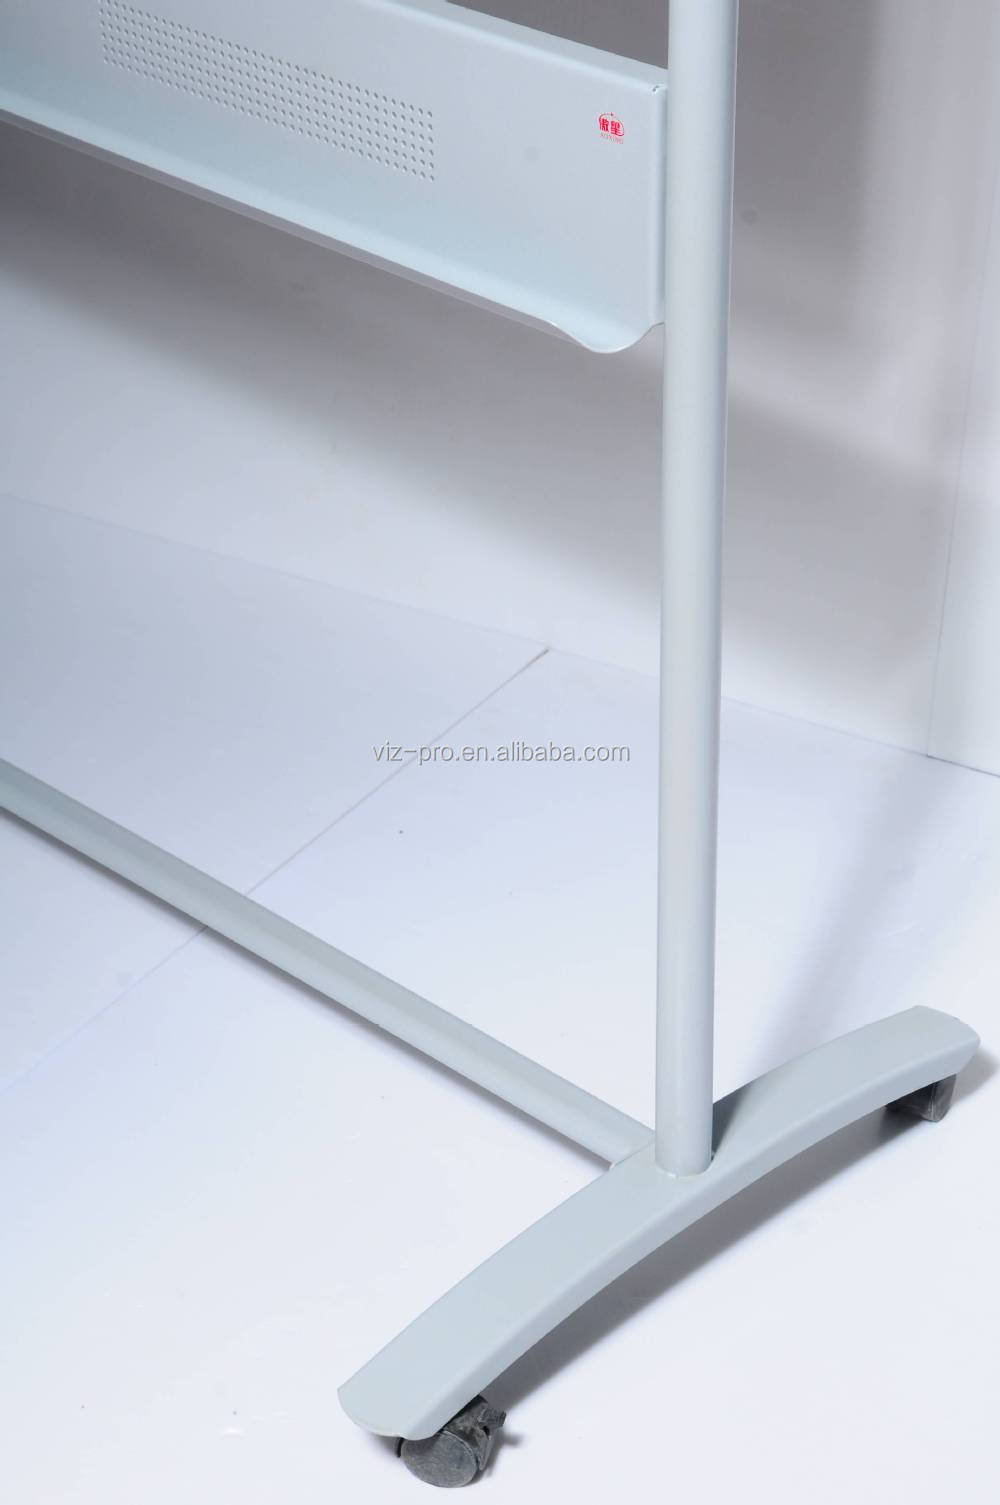 Mobile Writing Whiteboard 1200x900 mm